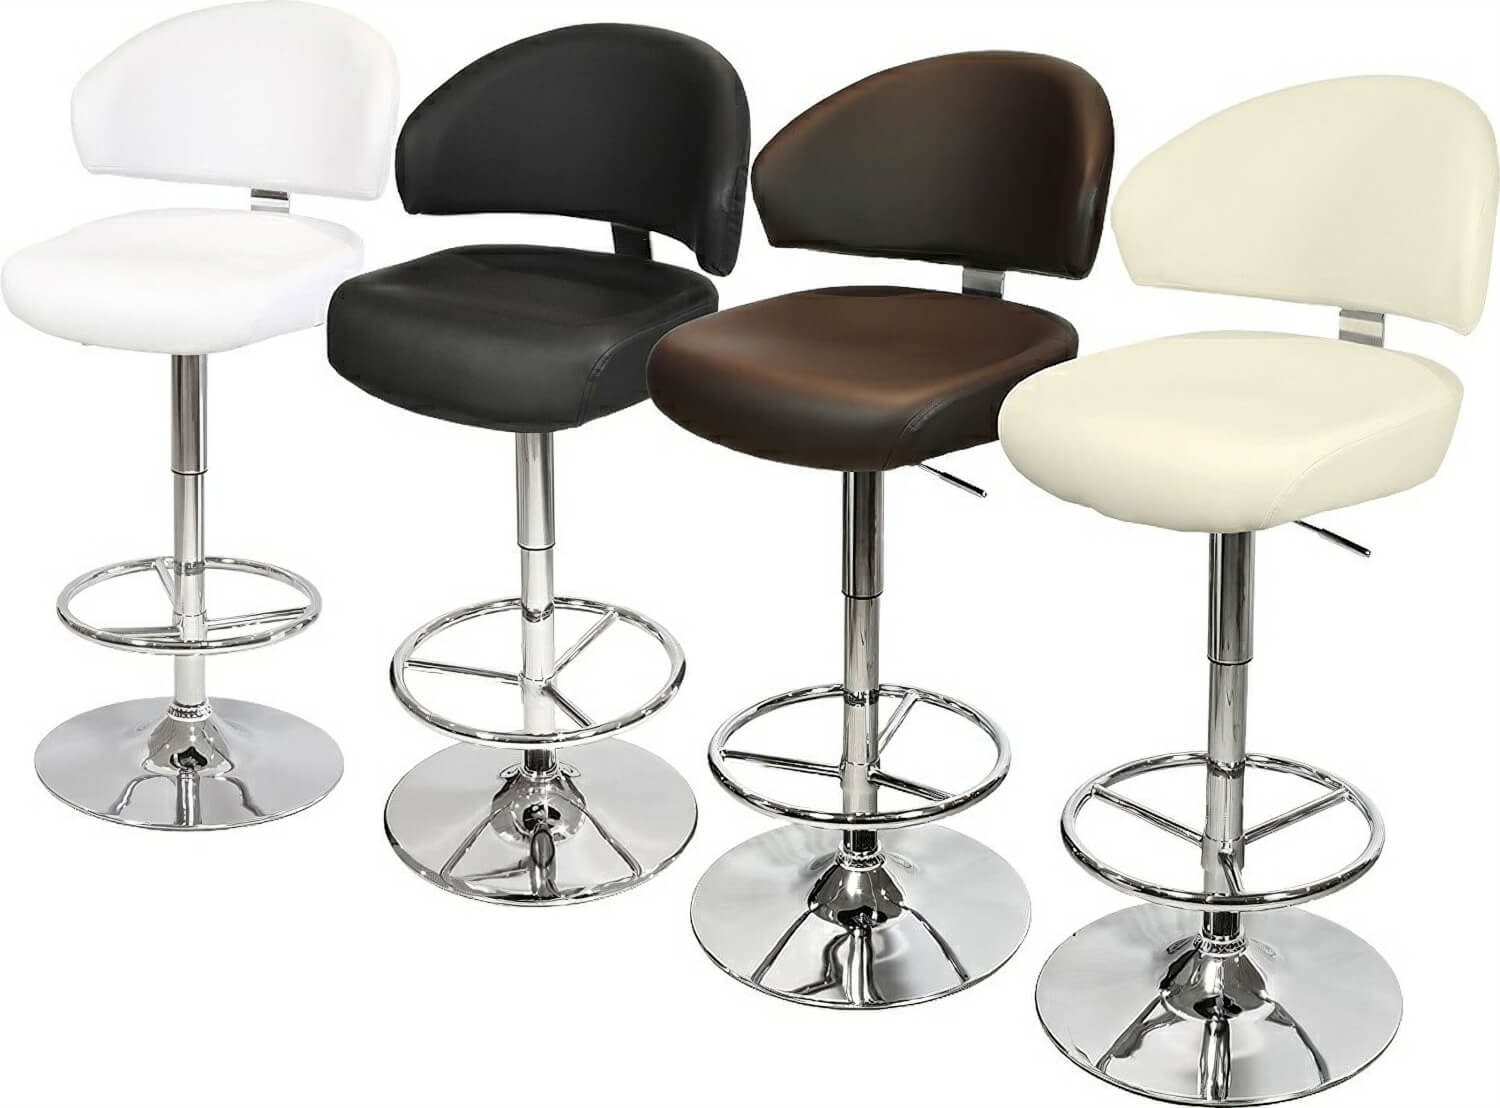 casino bar stool liberty games. Black Bedroom Furniture Sets. Home Design Ideas